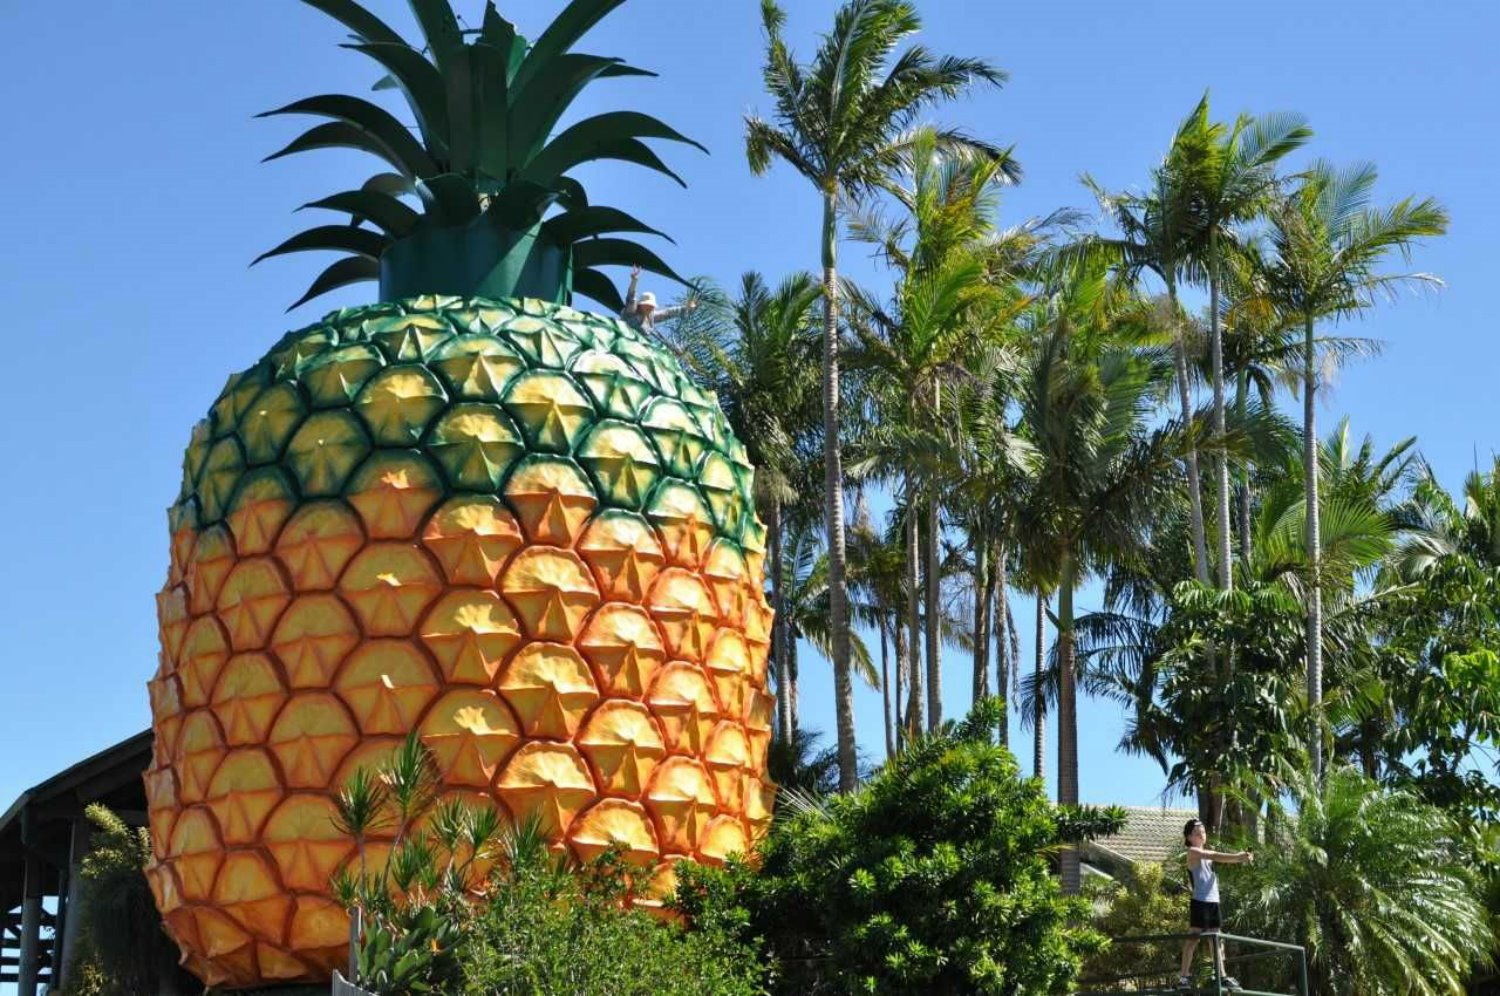 Big Pineapple en Australia de Peddle Thorp and Harvey, Paul Luff y Gary Smallcombe and Associates